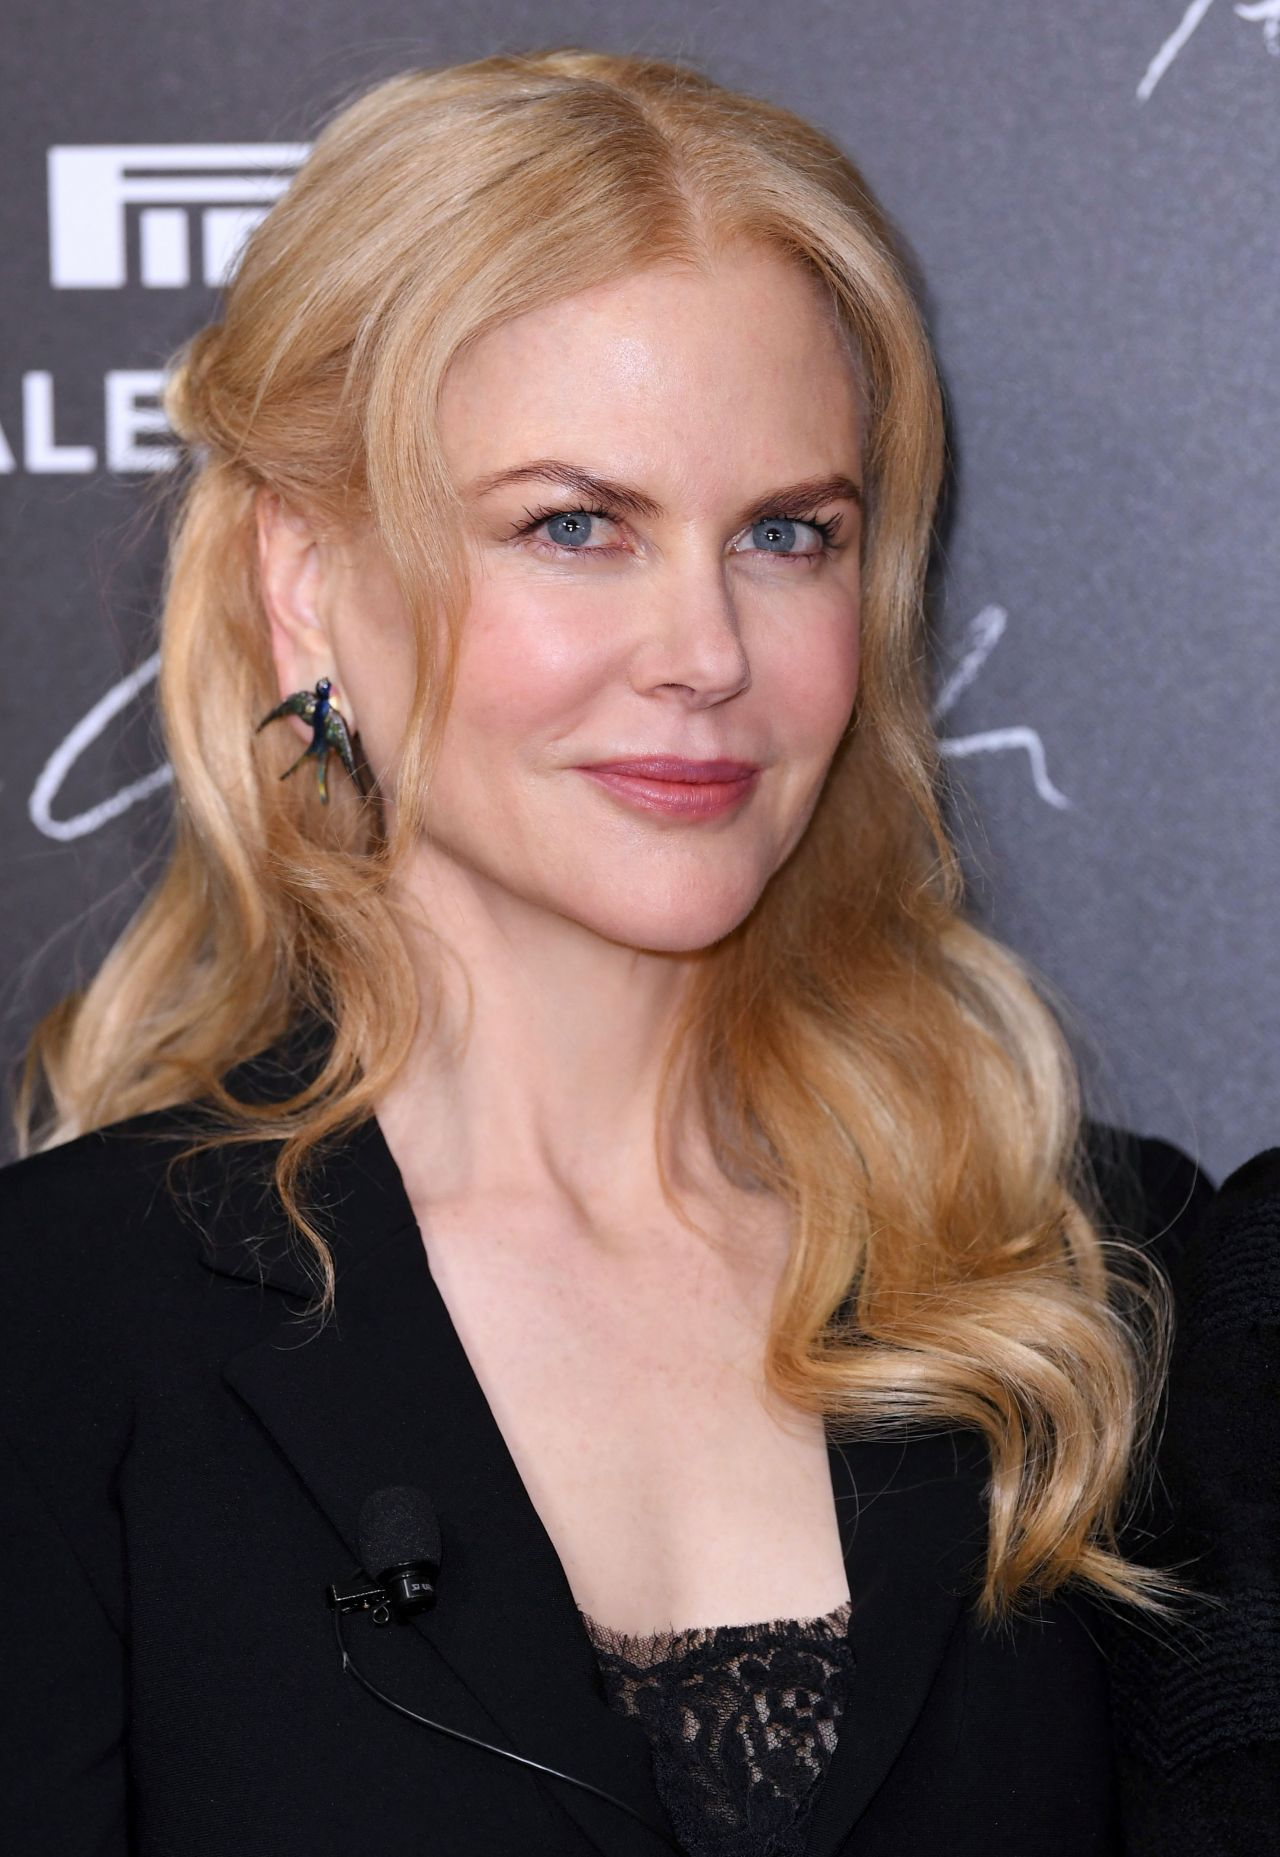 Nicole Kidman Pirelli Calendar 2017 Launch Photocall In